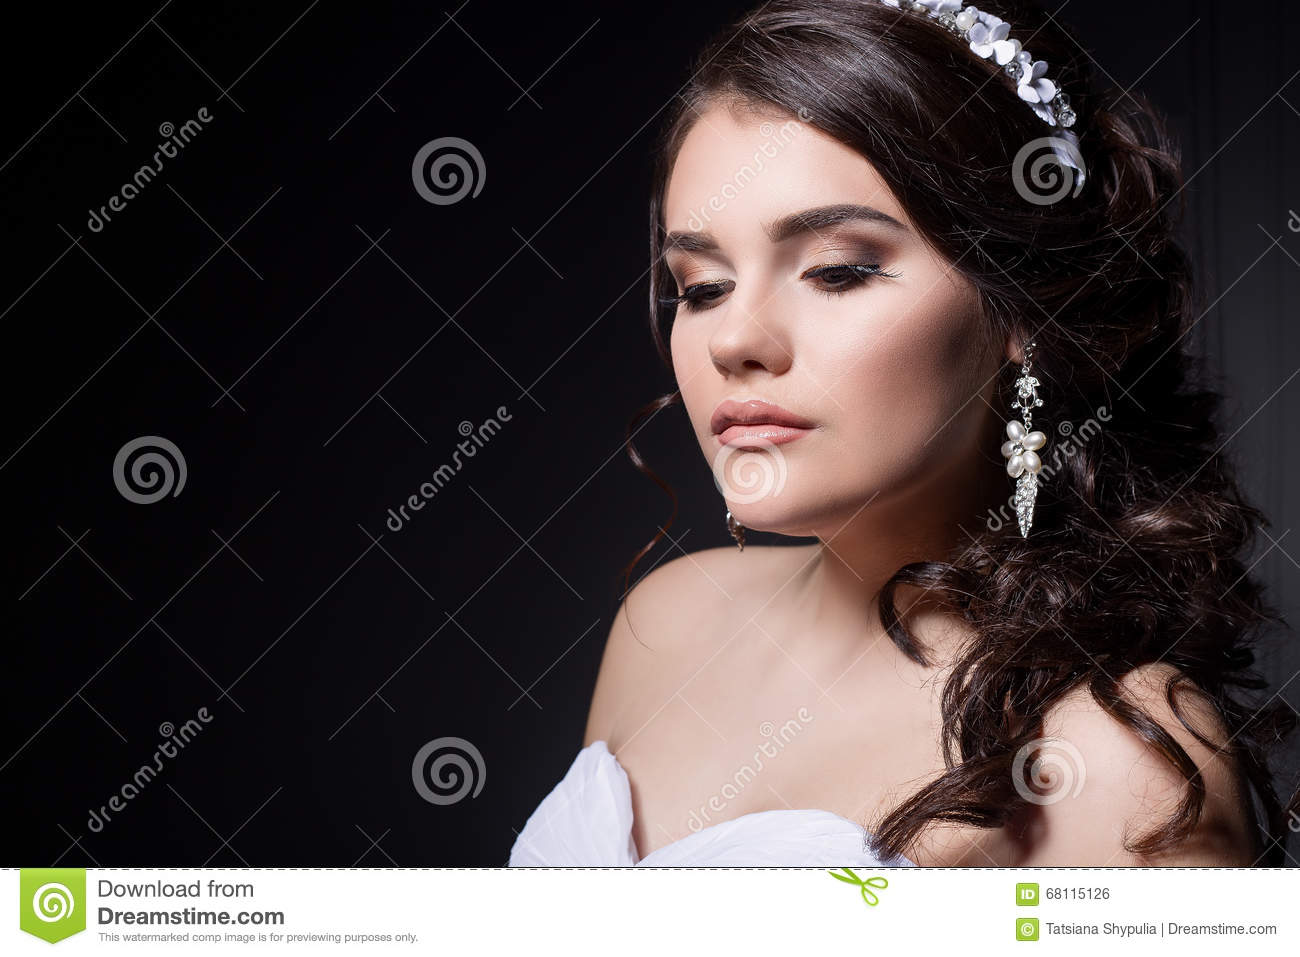 Beautiful Gentle Girl Portraits Of The Bride In A White Wedding